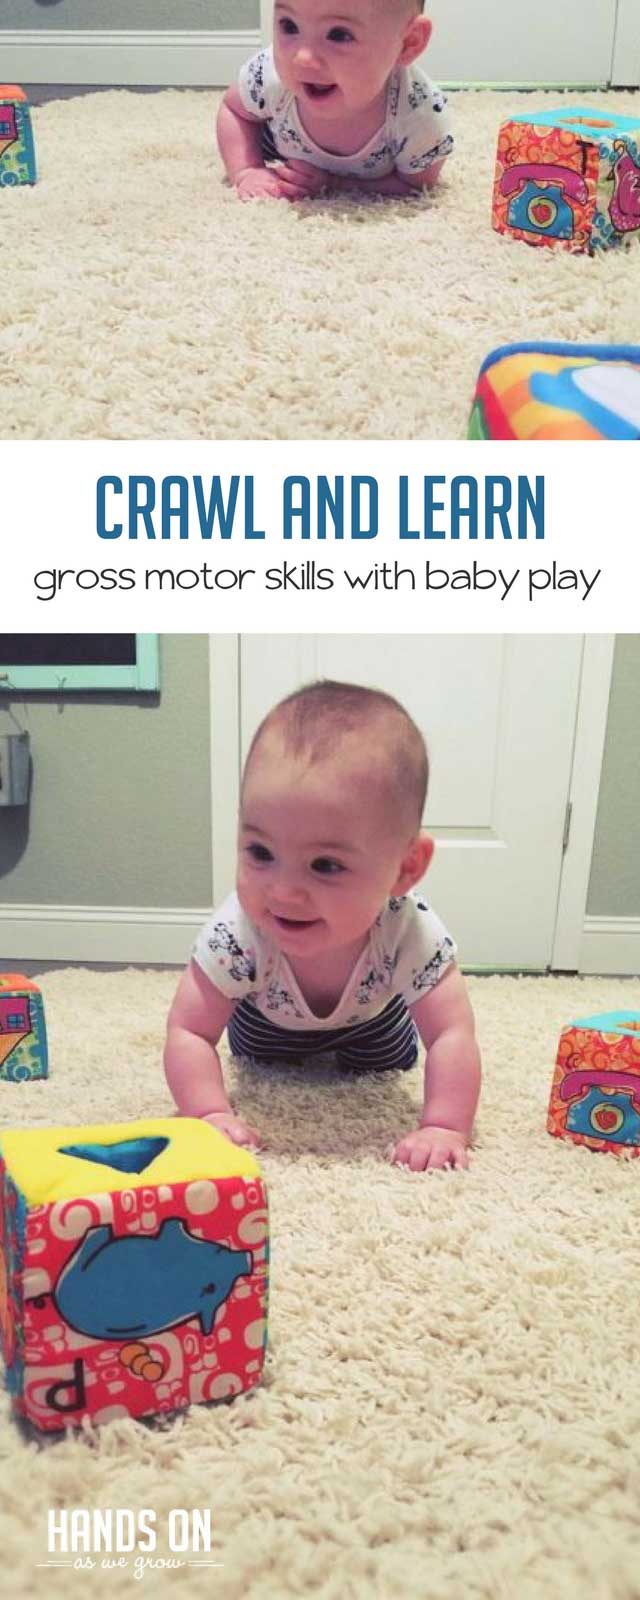 Develop gross motor skills with a crawl and learn obstacle course for baby! Use baby's favorite toys to motivate your baby to get moving.